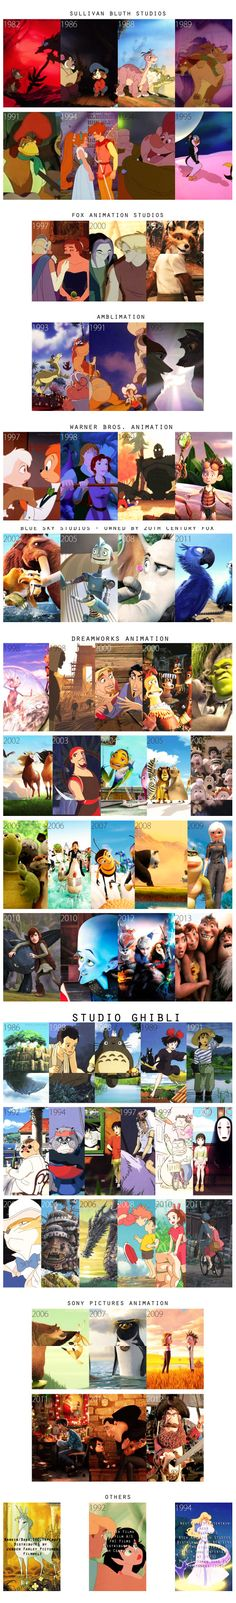 A crash course on non-disney films and studios (sequels not included; Pixar not included to avoid Disney-Pixar rage; list is not exhaustive) Edit: Credit to Aardman Studios for Chicken Run, Wallace &...